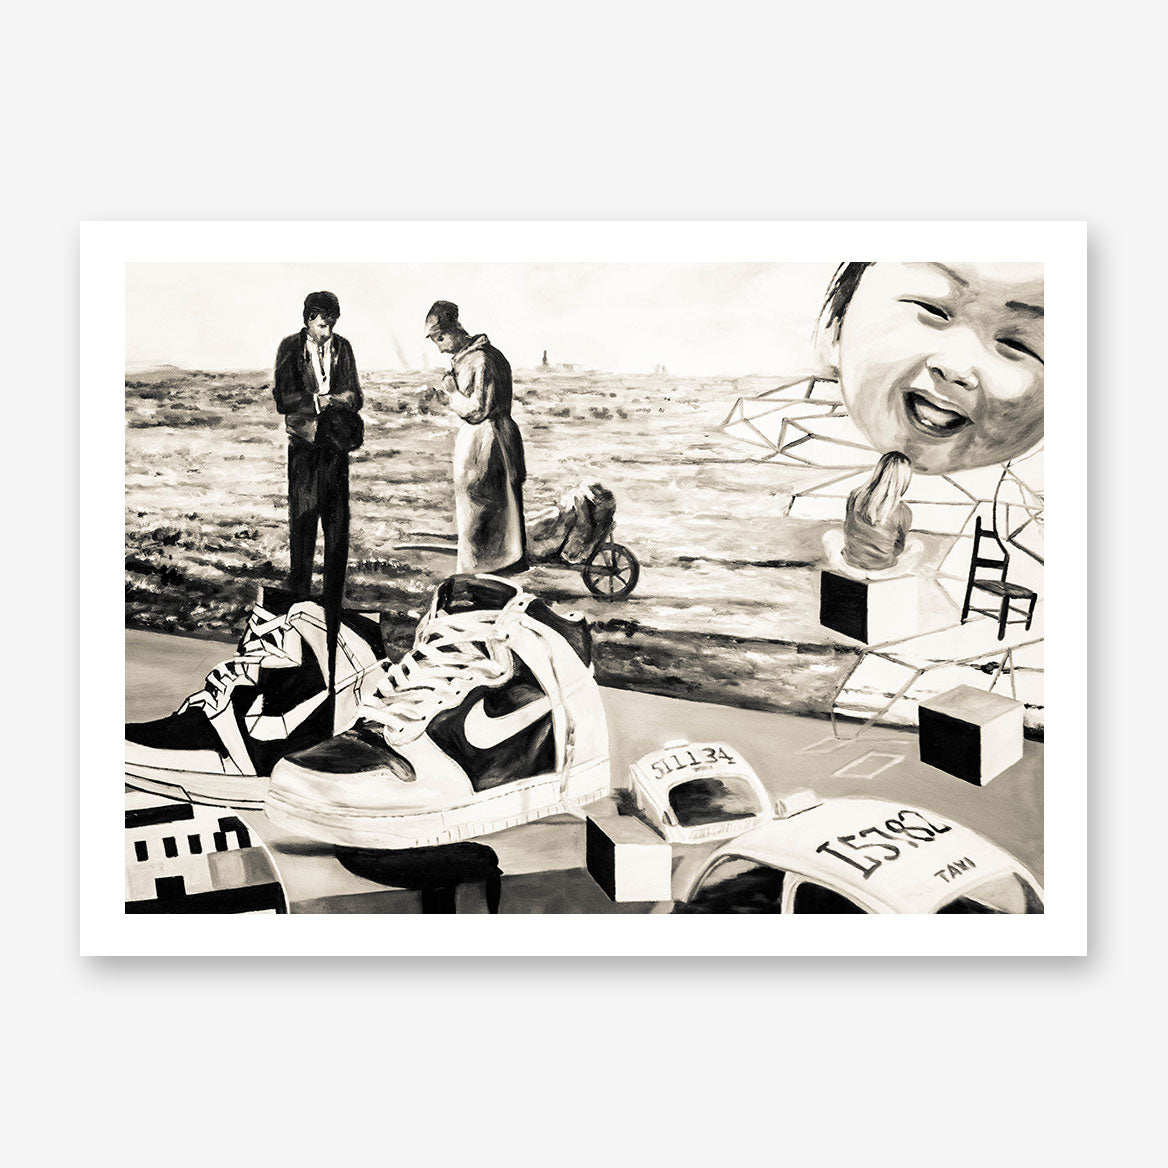 Street art style poster print of a black and white sneakers painting, with a mixture of vintage and modern art.